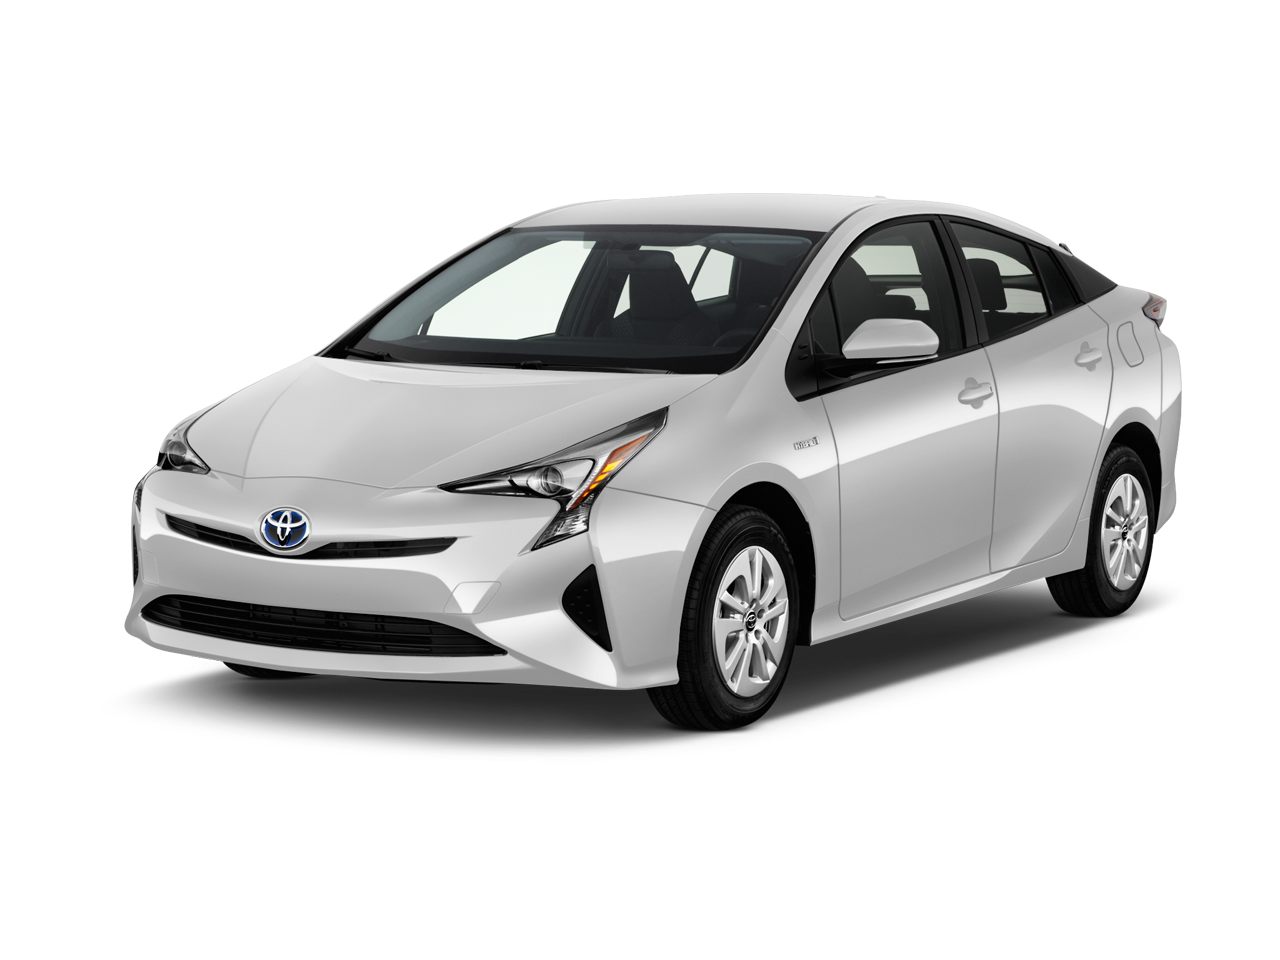 new 2017 toyota prius two 5d hatchback near kennewick wa toyota of tri cities. Black Bedroom Furniture Sets. Home Design Ideas